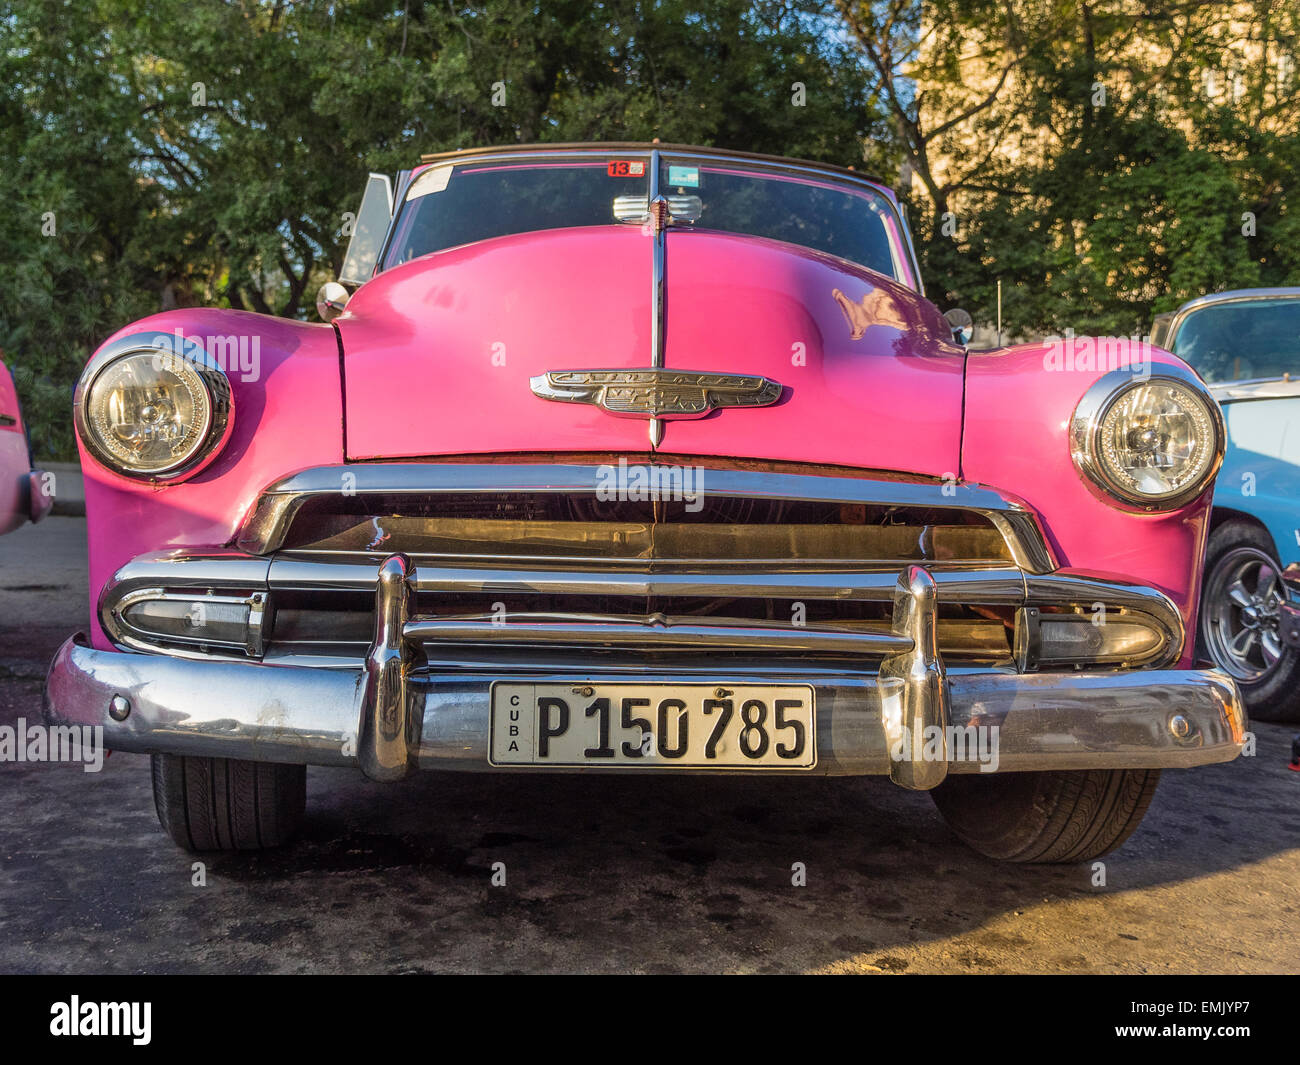 Pink Chevy Convertible High Resolution Stock Photography And Images Alamy